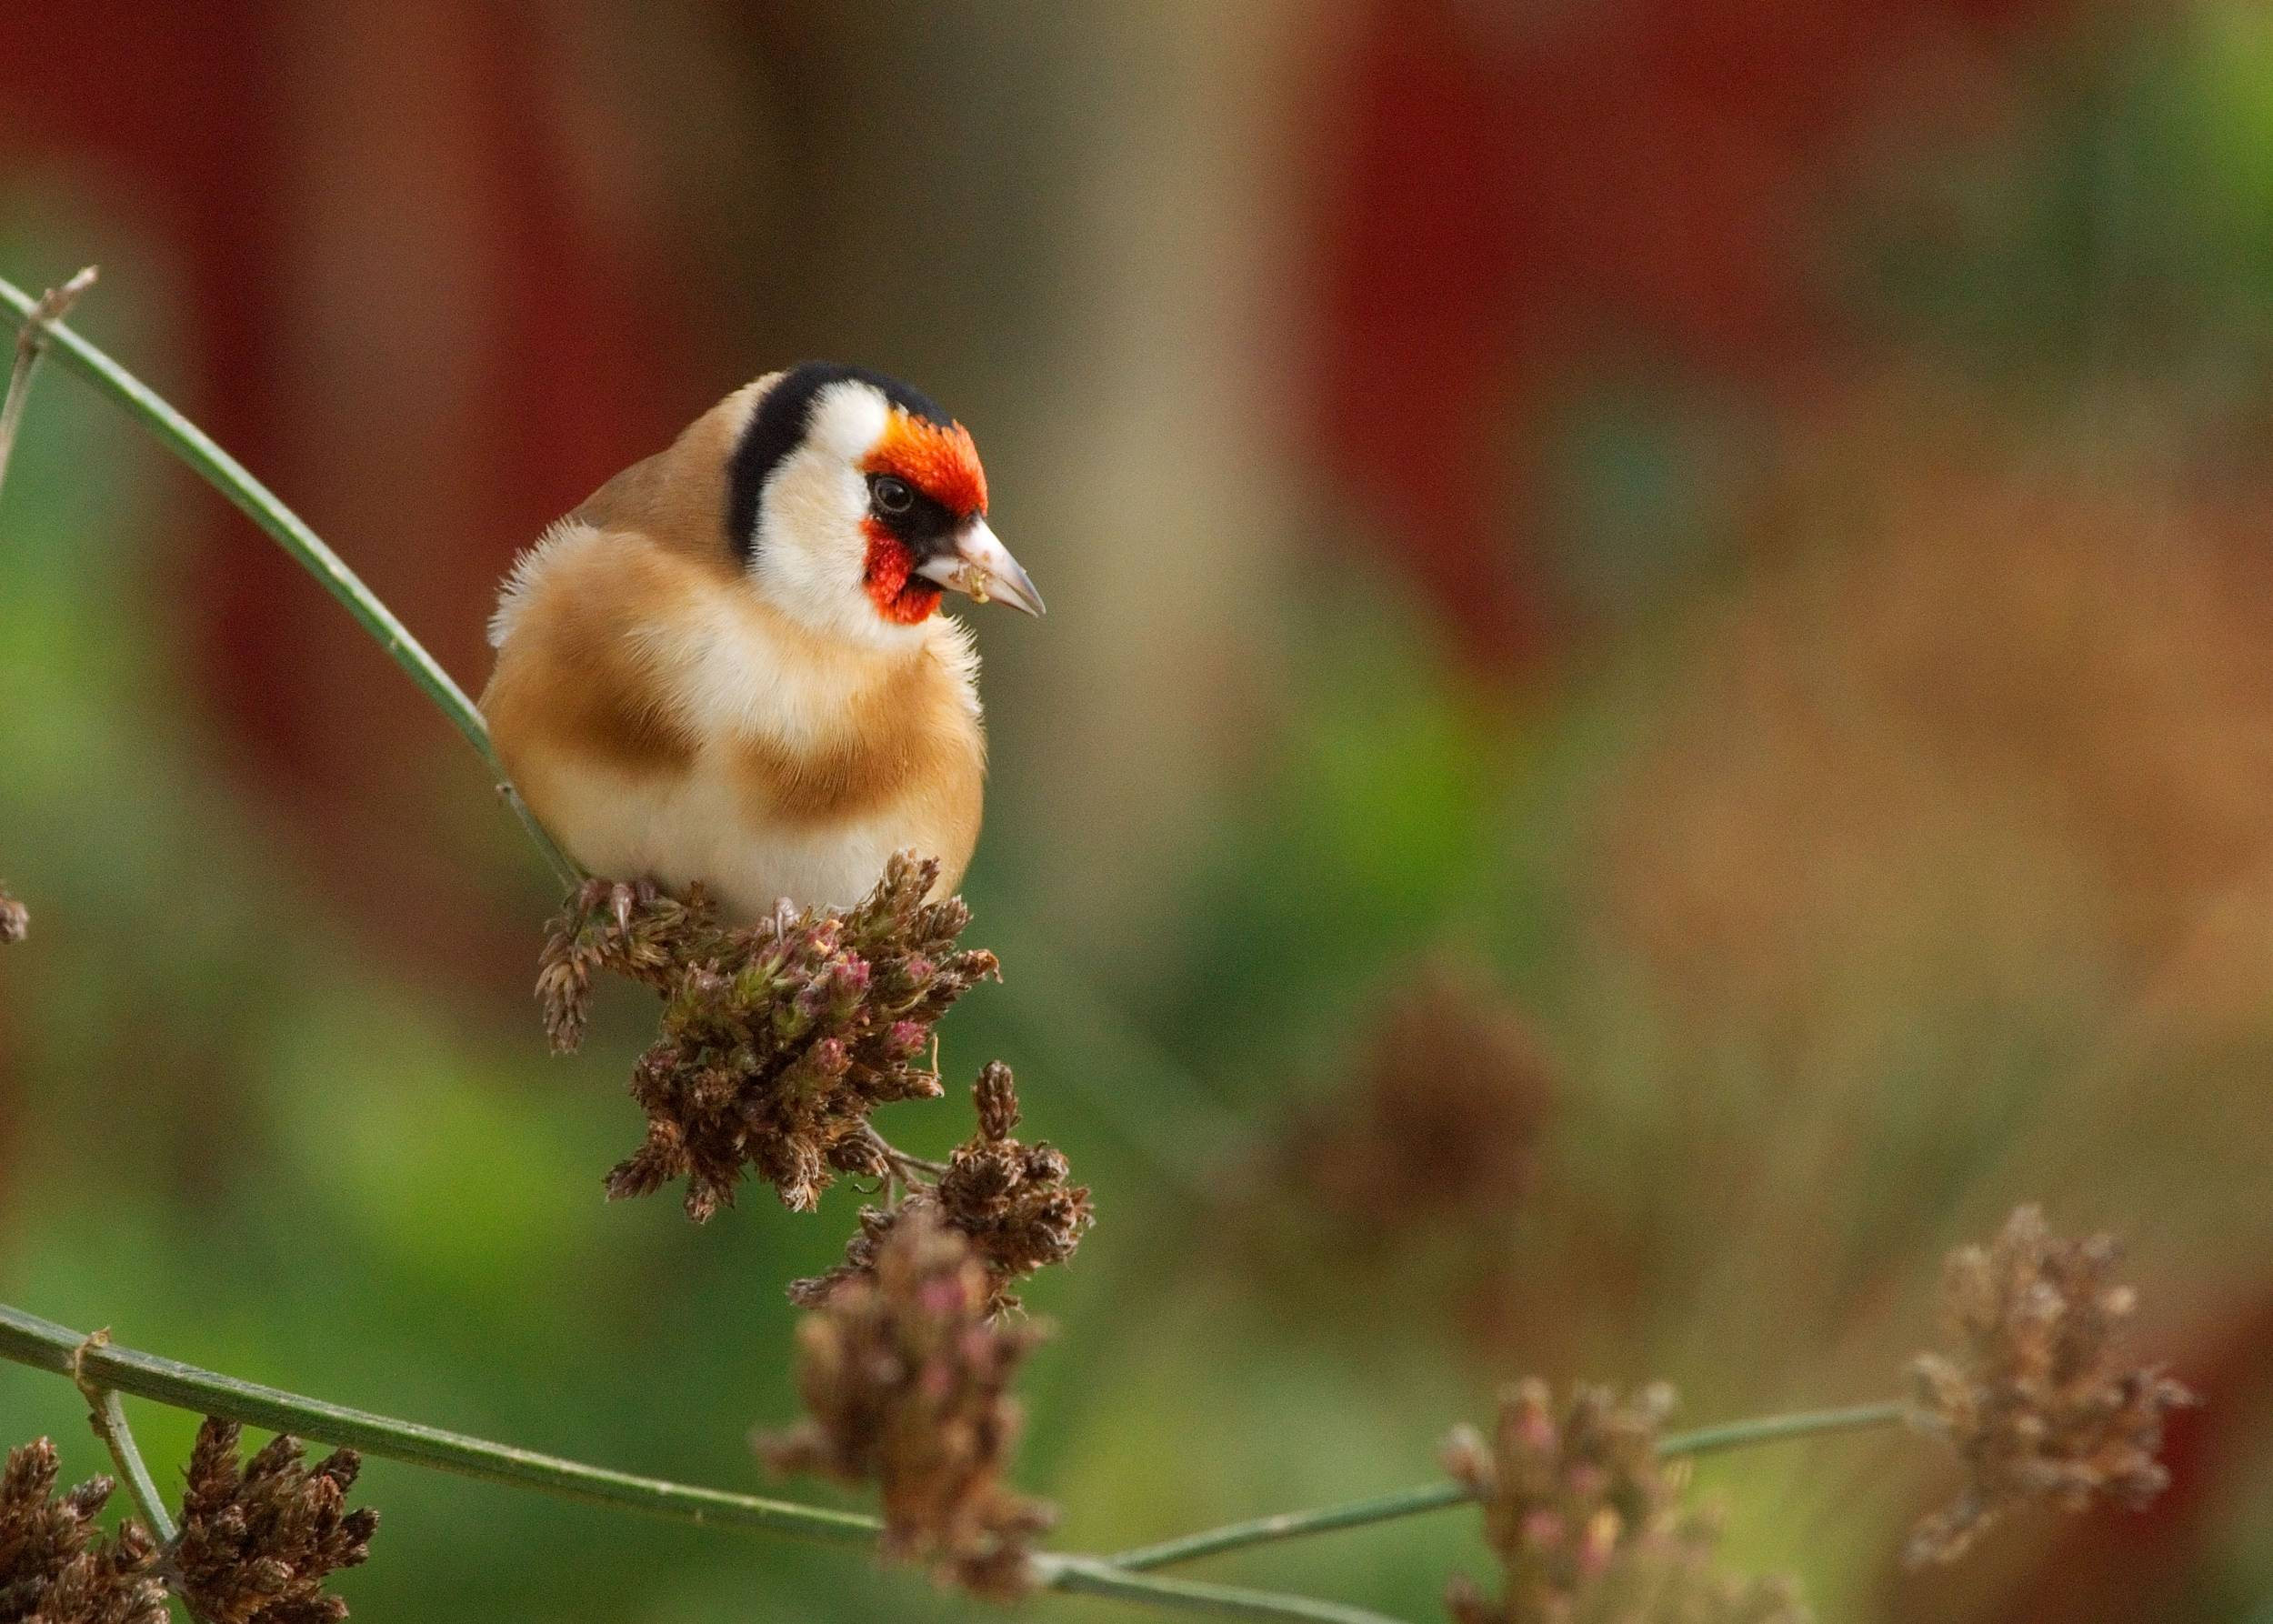 Formerly rare garden birds now booming thanks to food put out for